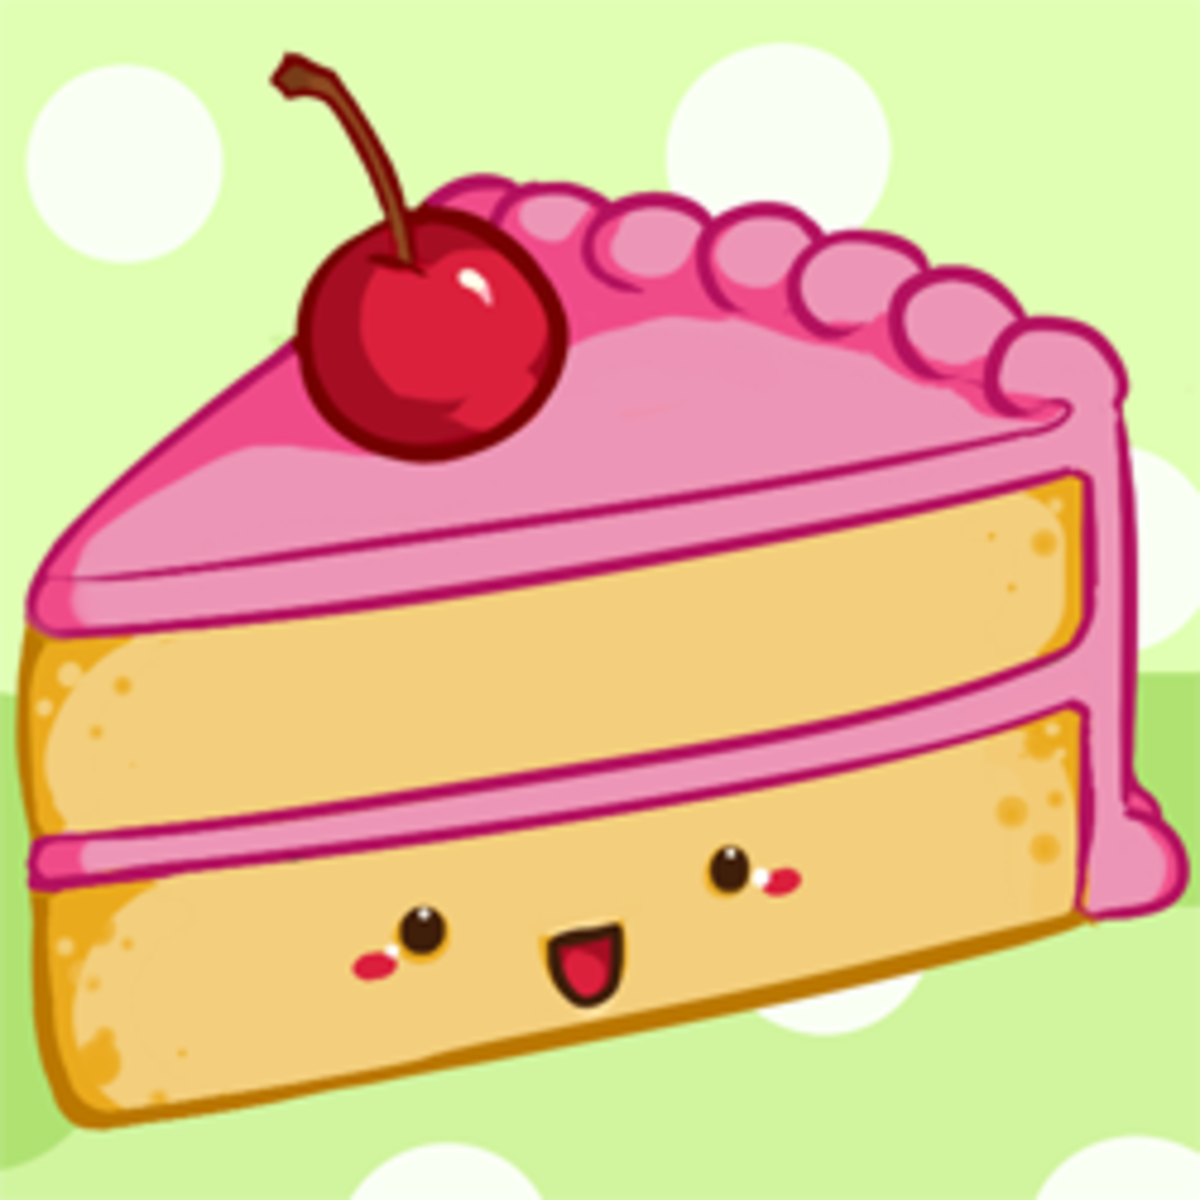 Drawing a Kawaii Cute Cake Slice